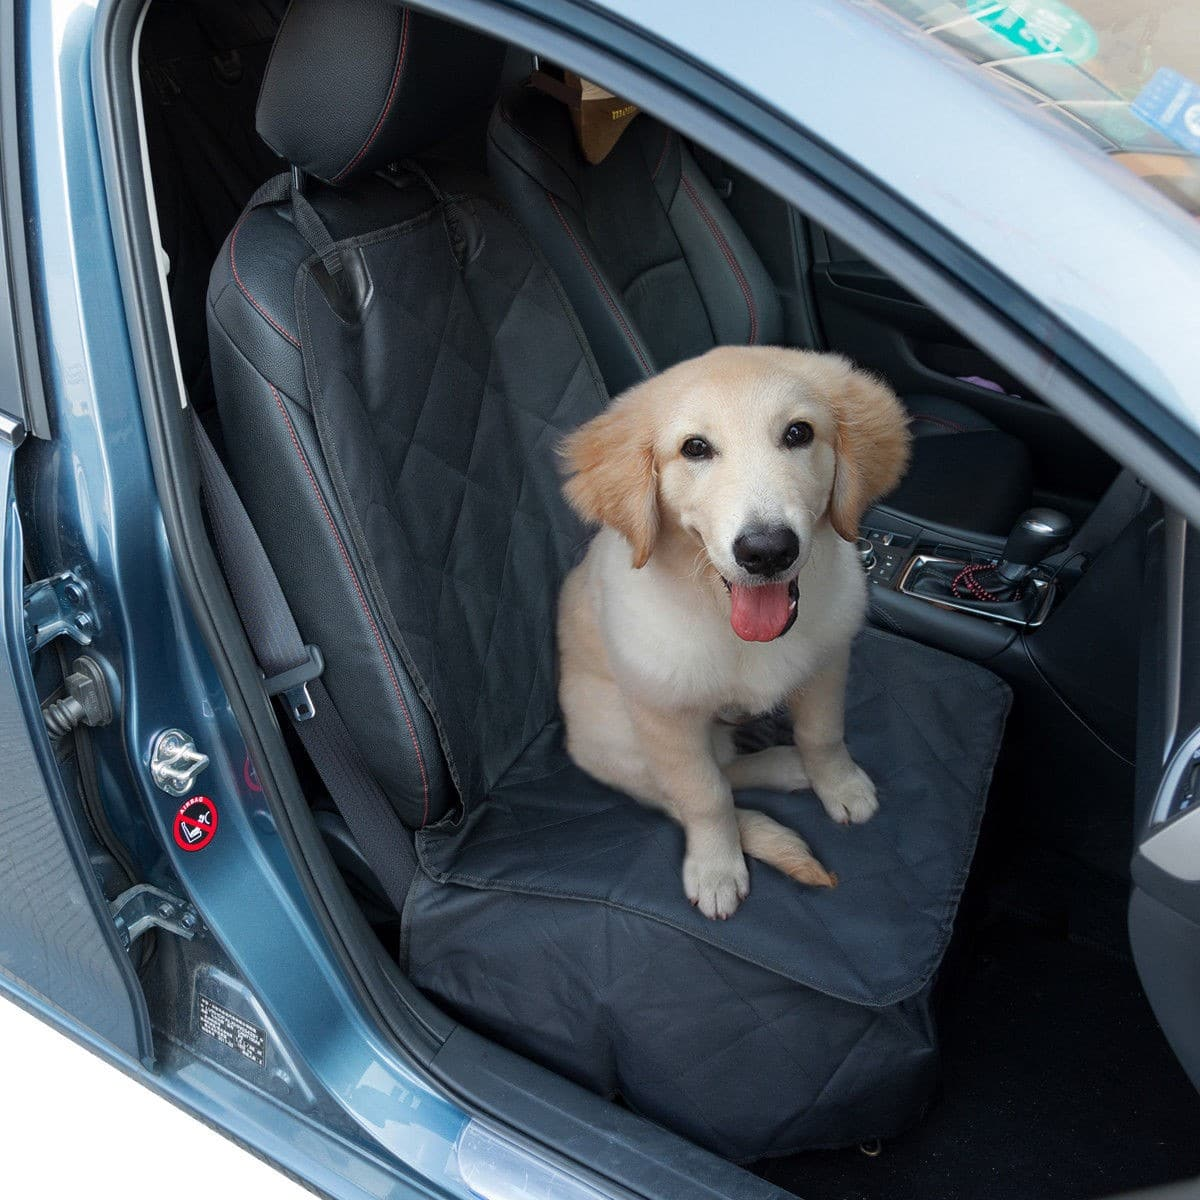 Costway Waterproof Pet Front Car Seat Cover $8.95 + Free Shipping